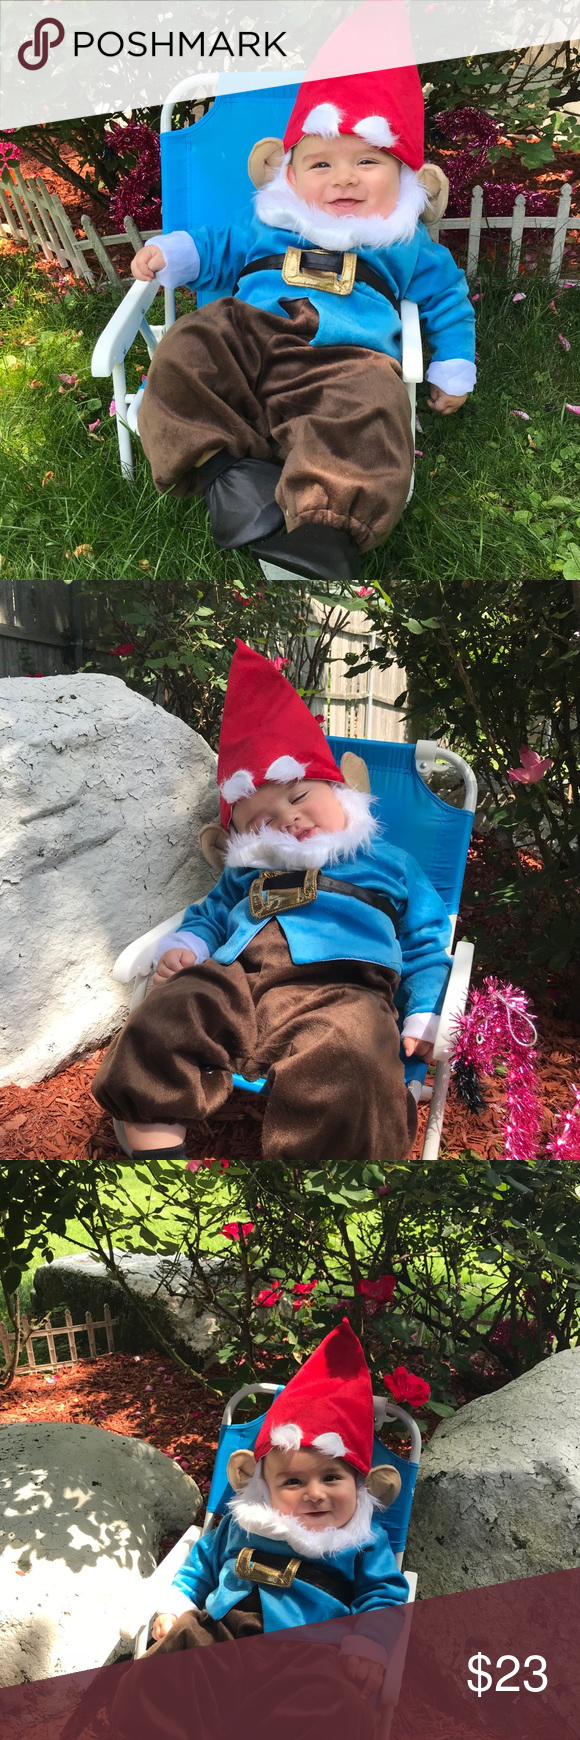 Little garden gnome costume #gnomecostume Spotted while shopping on Poshmark: Little garden gnome costume! #poshmark #fashion #shopping #style #incharacter #Other #gnomecostume